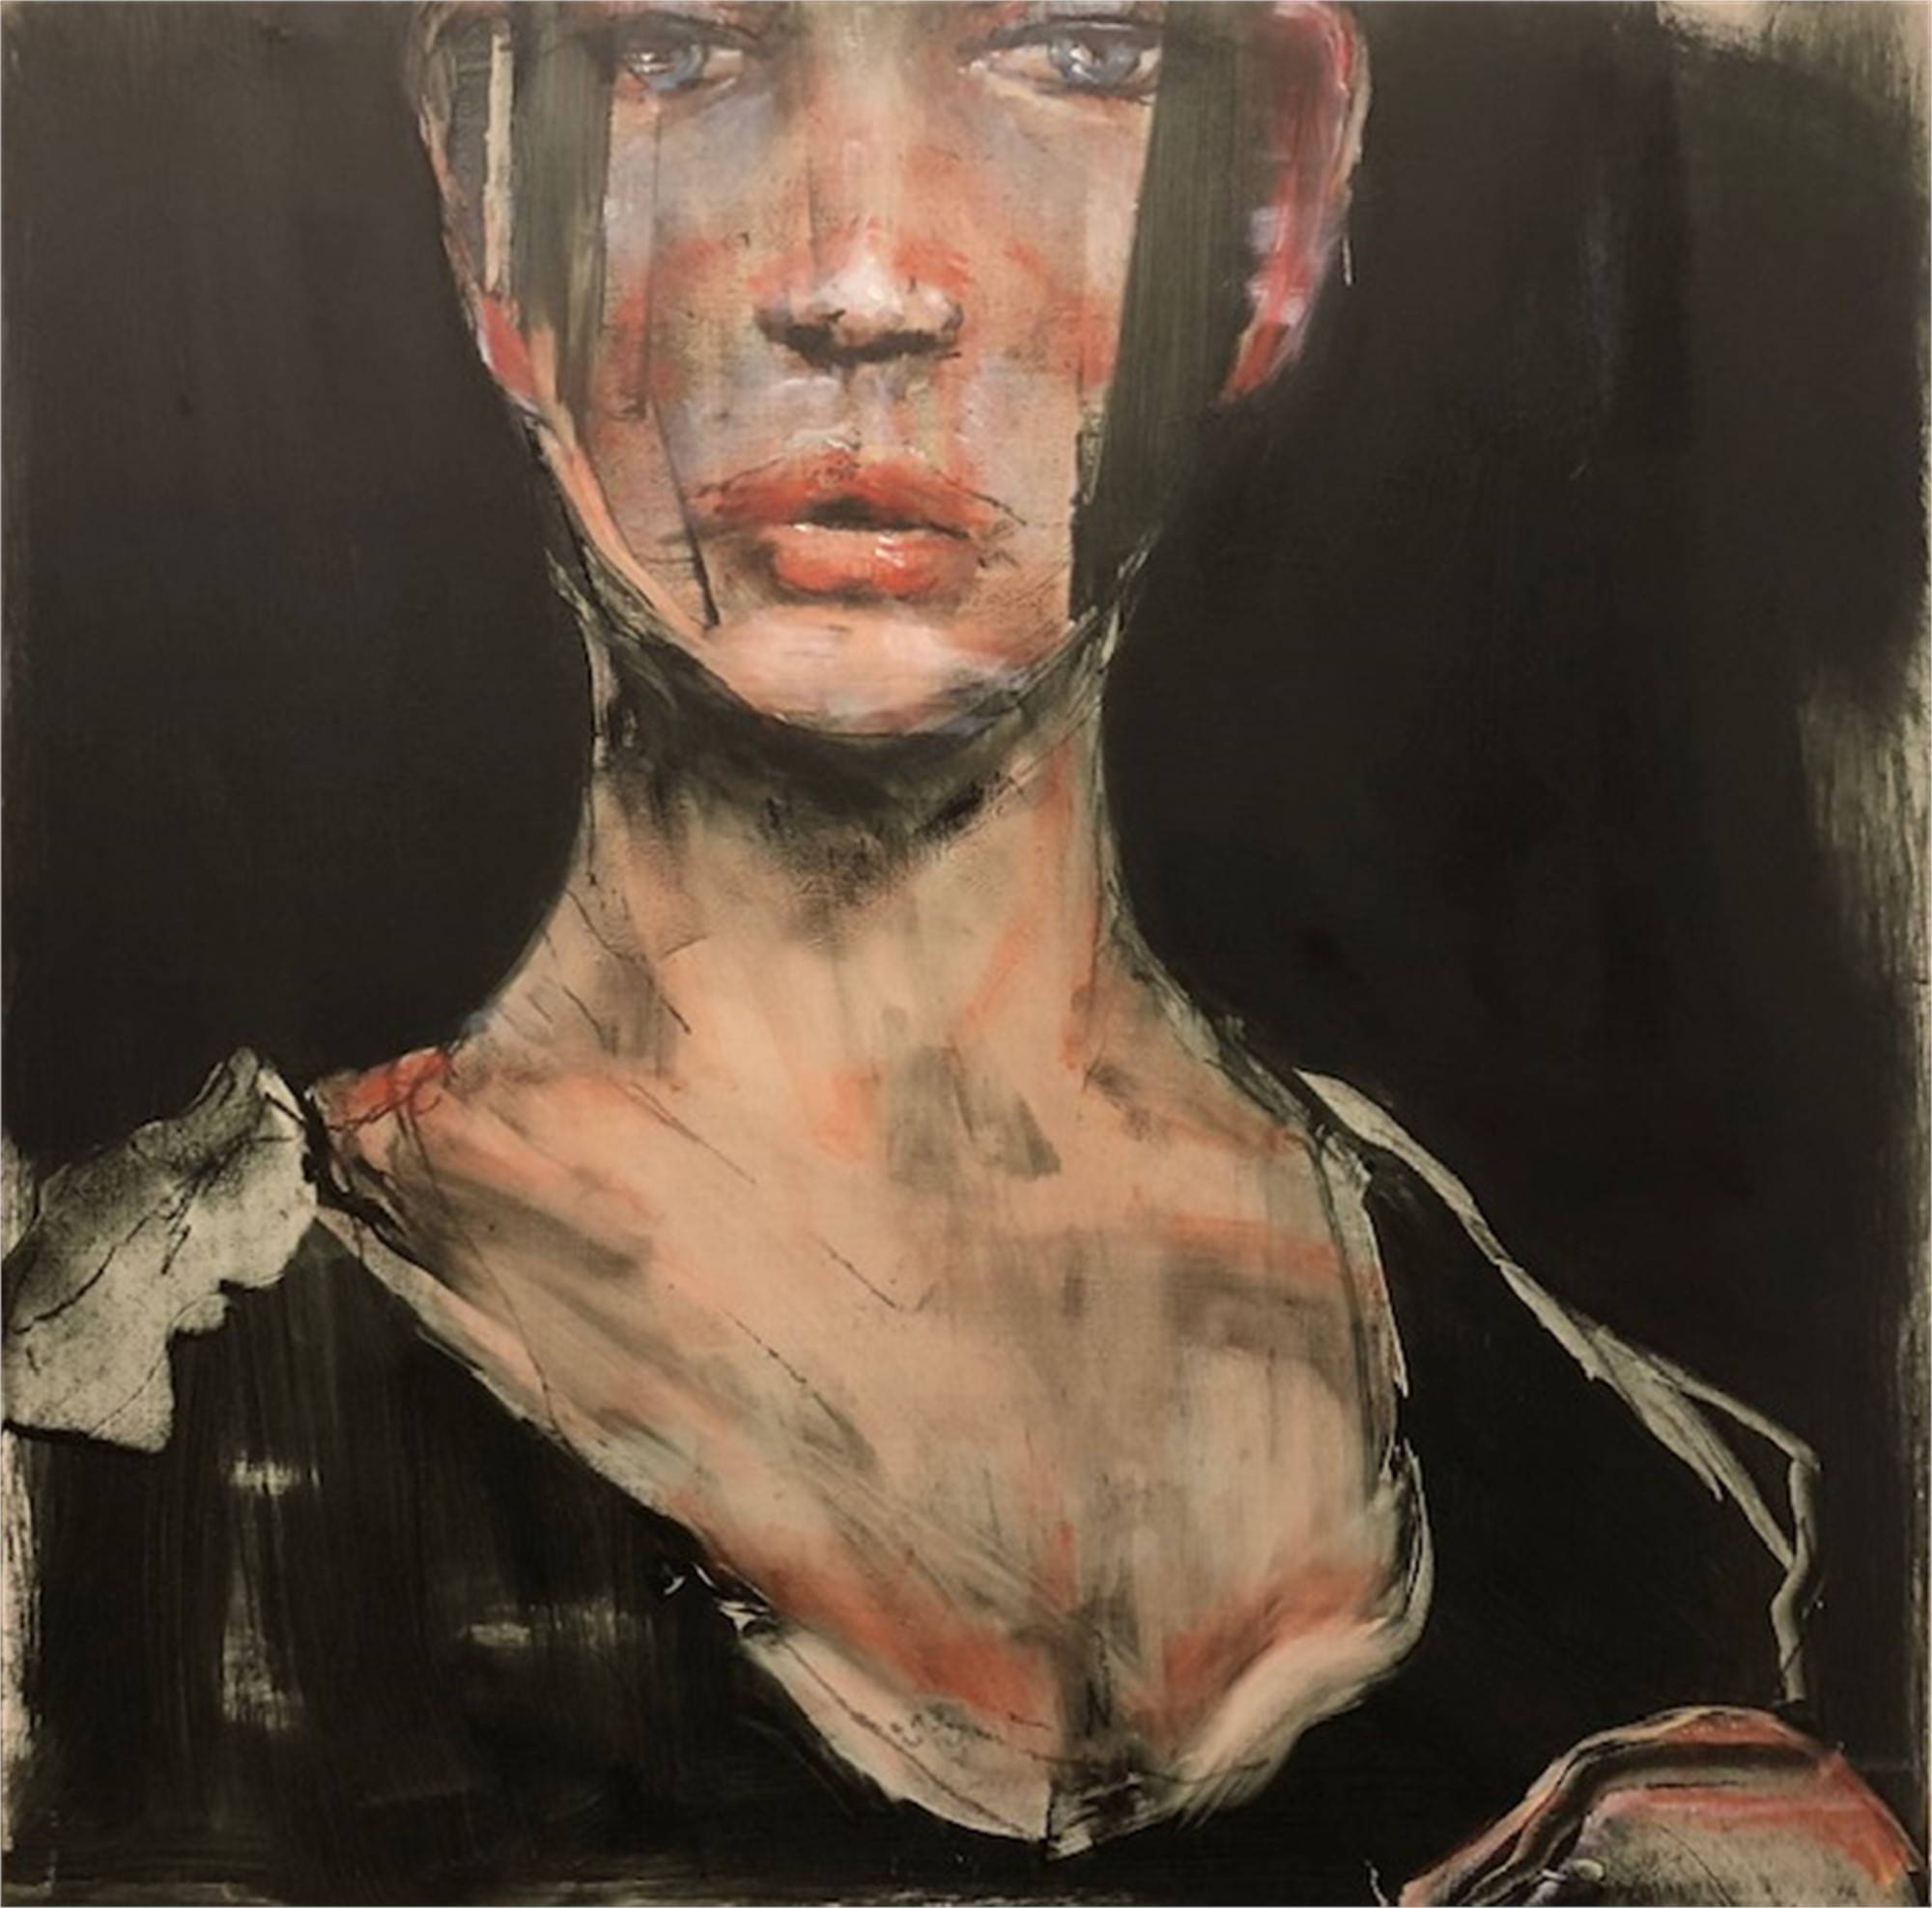 Study for Jane Doe with Unintended Hotness by Michael Dowling